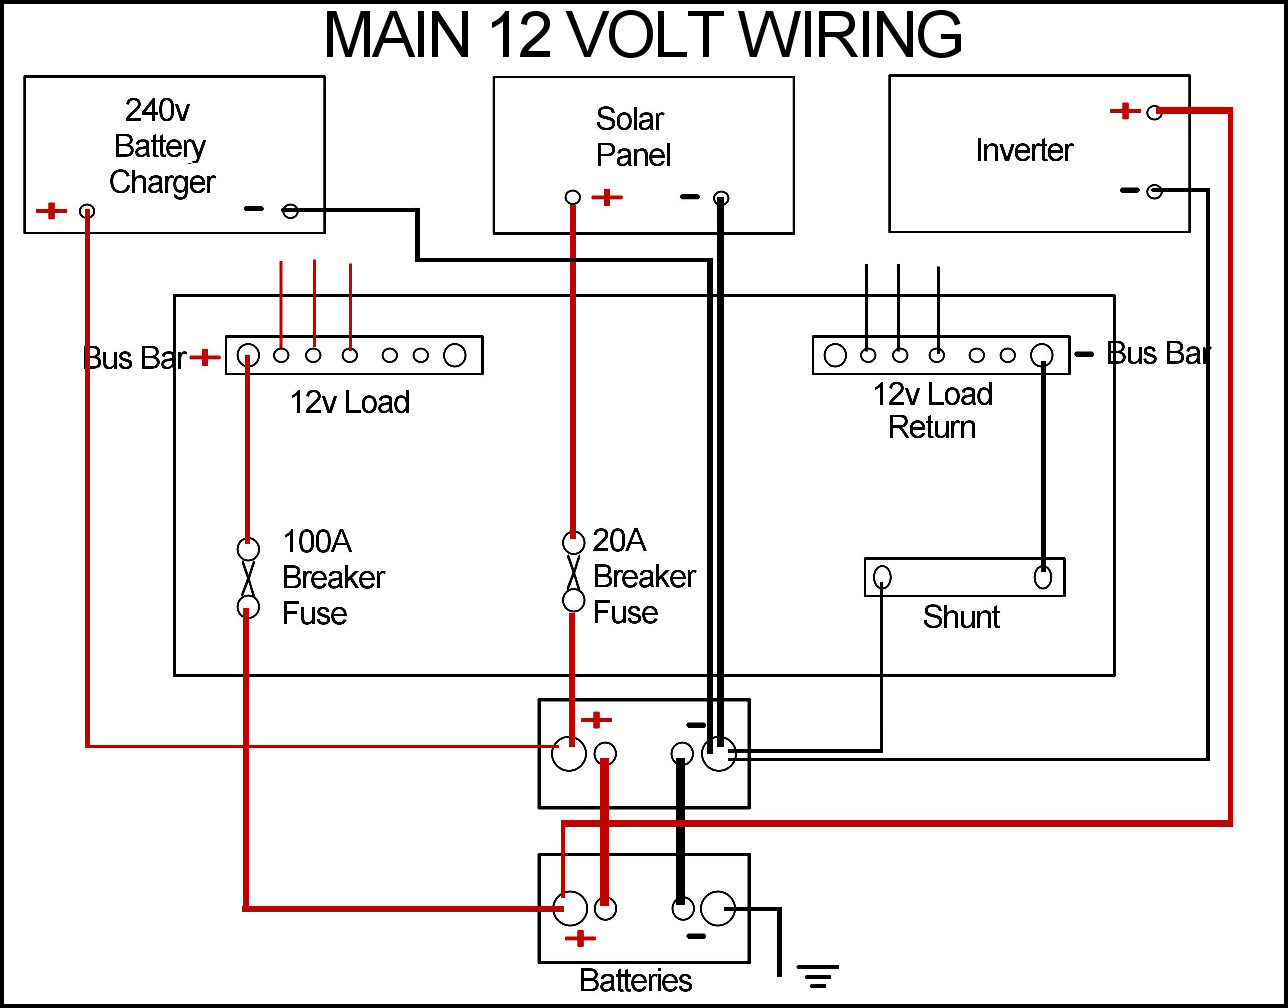 12v Wiring Diagram : Campervan leisure battery wiring diagram